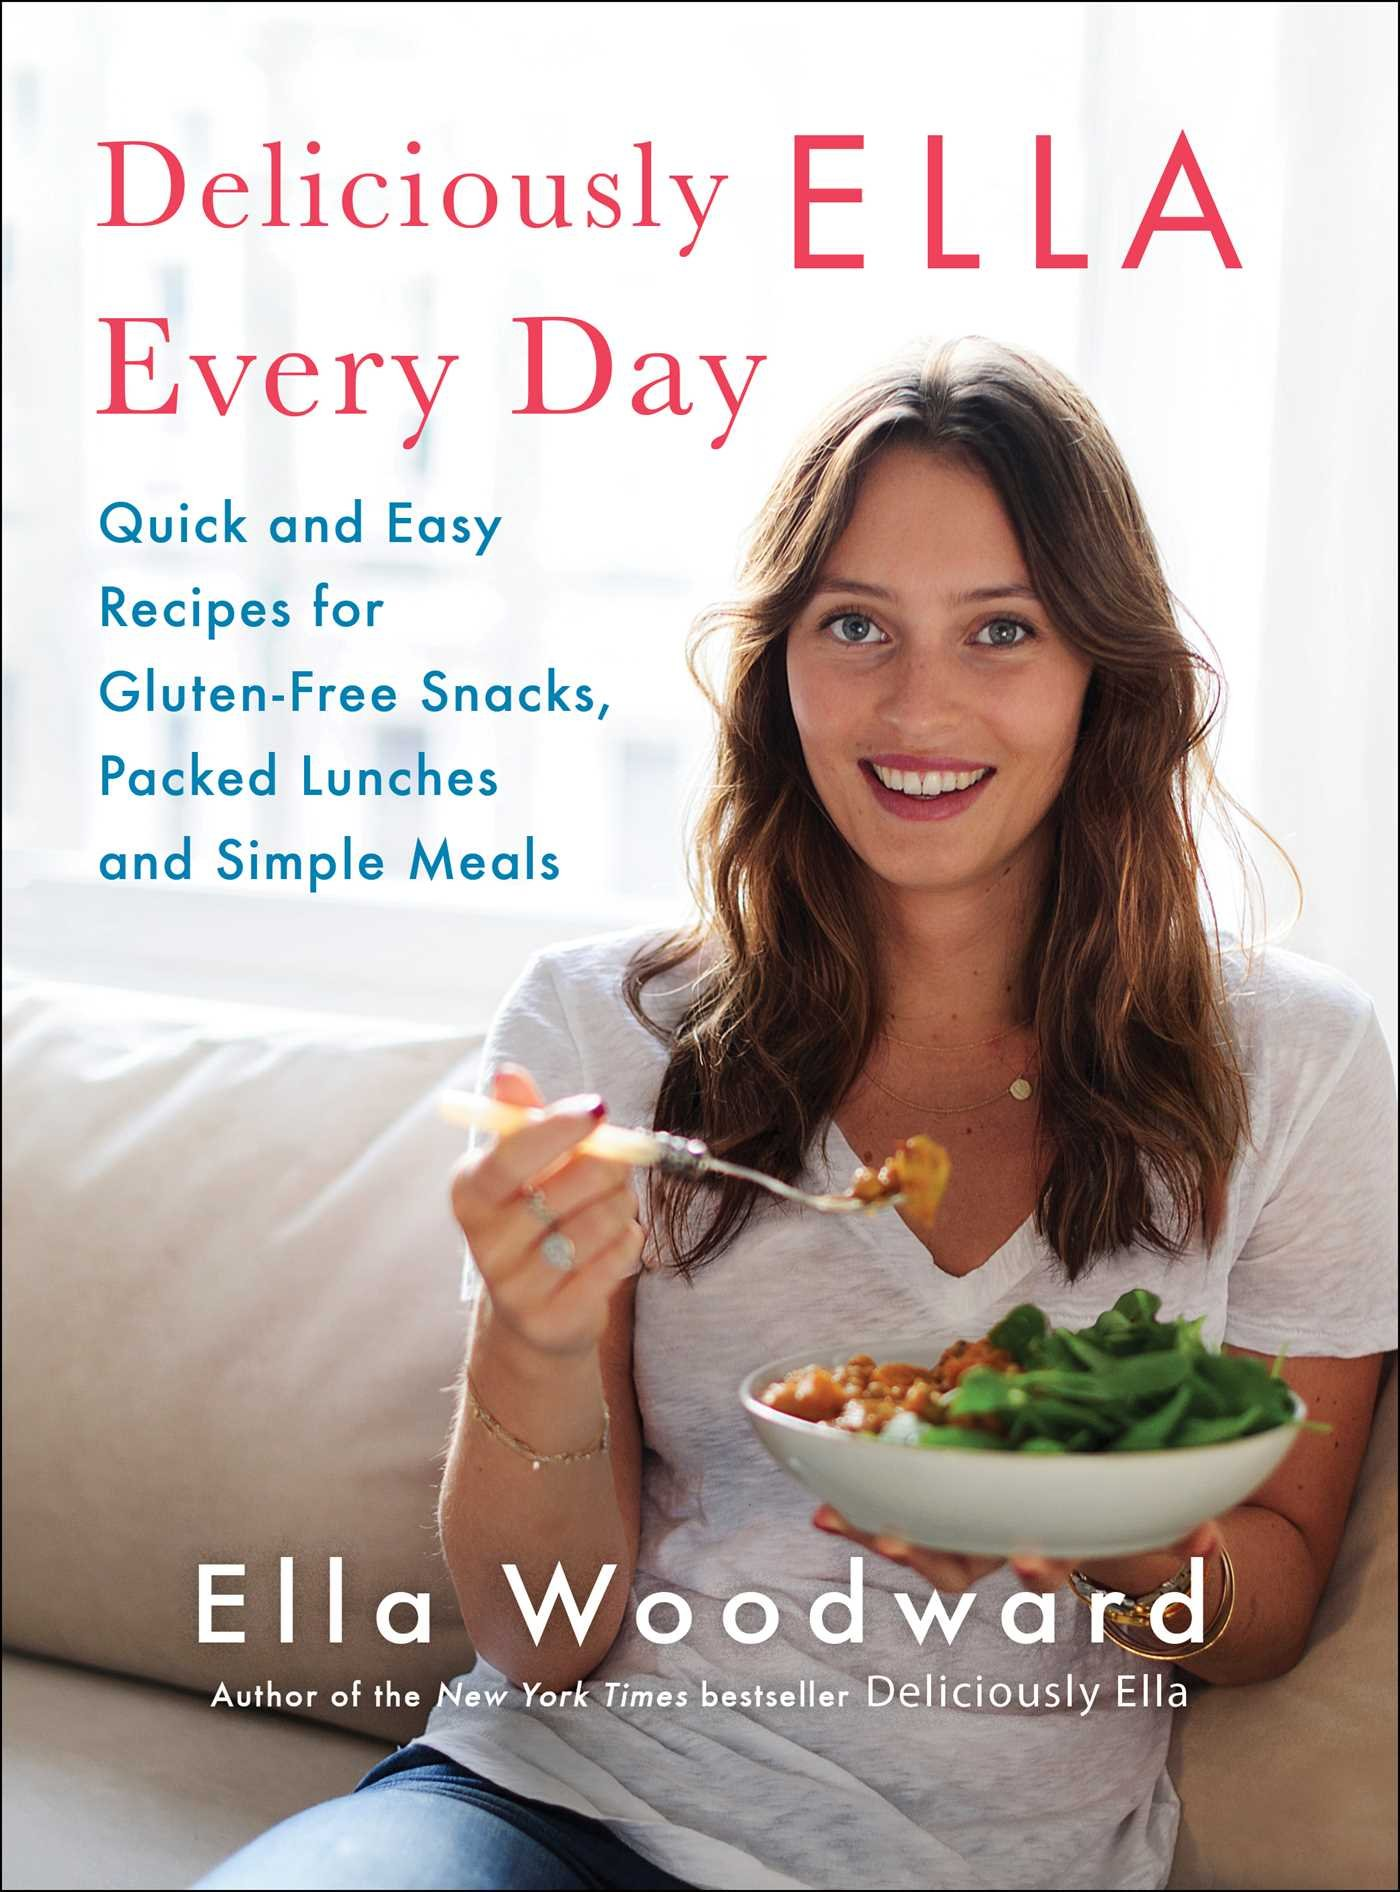 Deliciously Ella Every Day: Quick and Easy Recipes for Gluten-Free Snacks, Packed Lunches, and Simple Meals (2) by Scribner